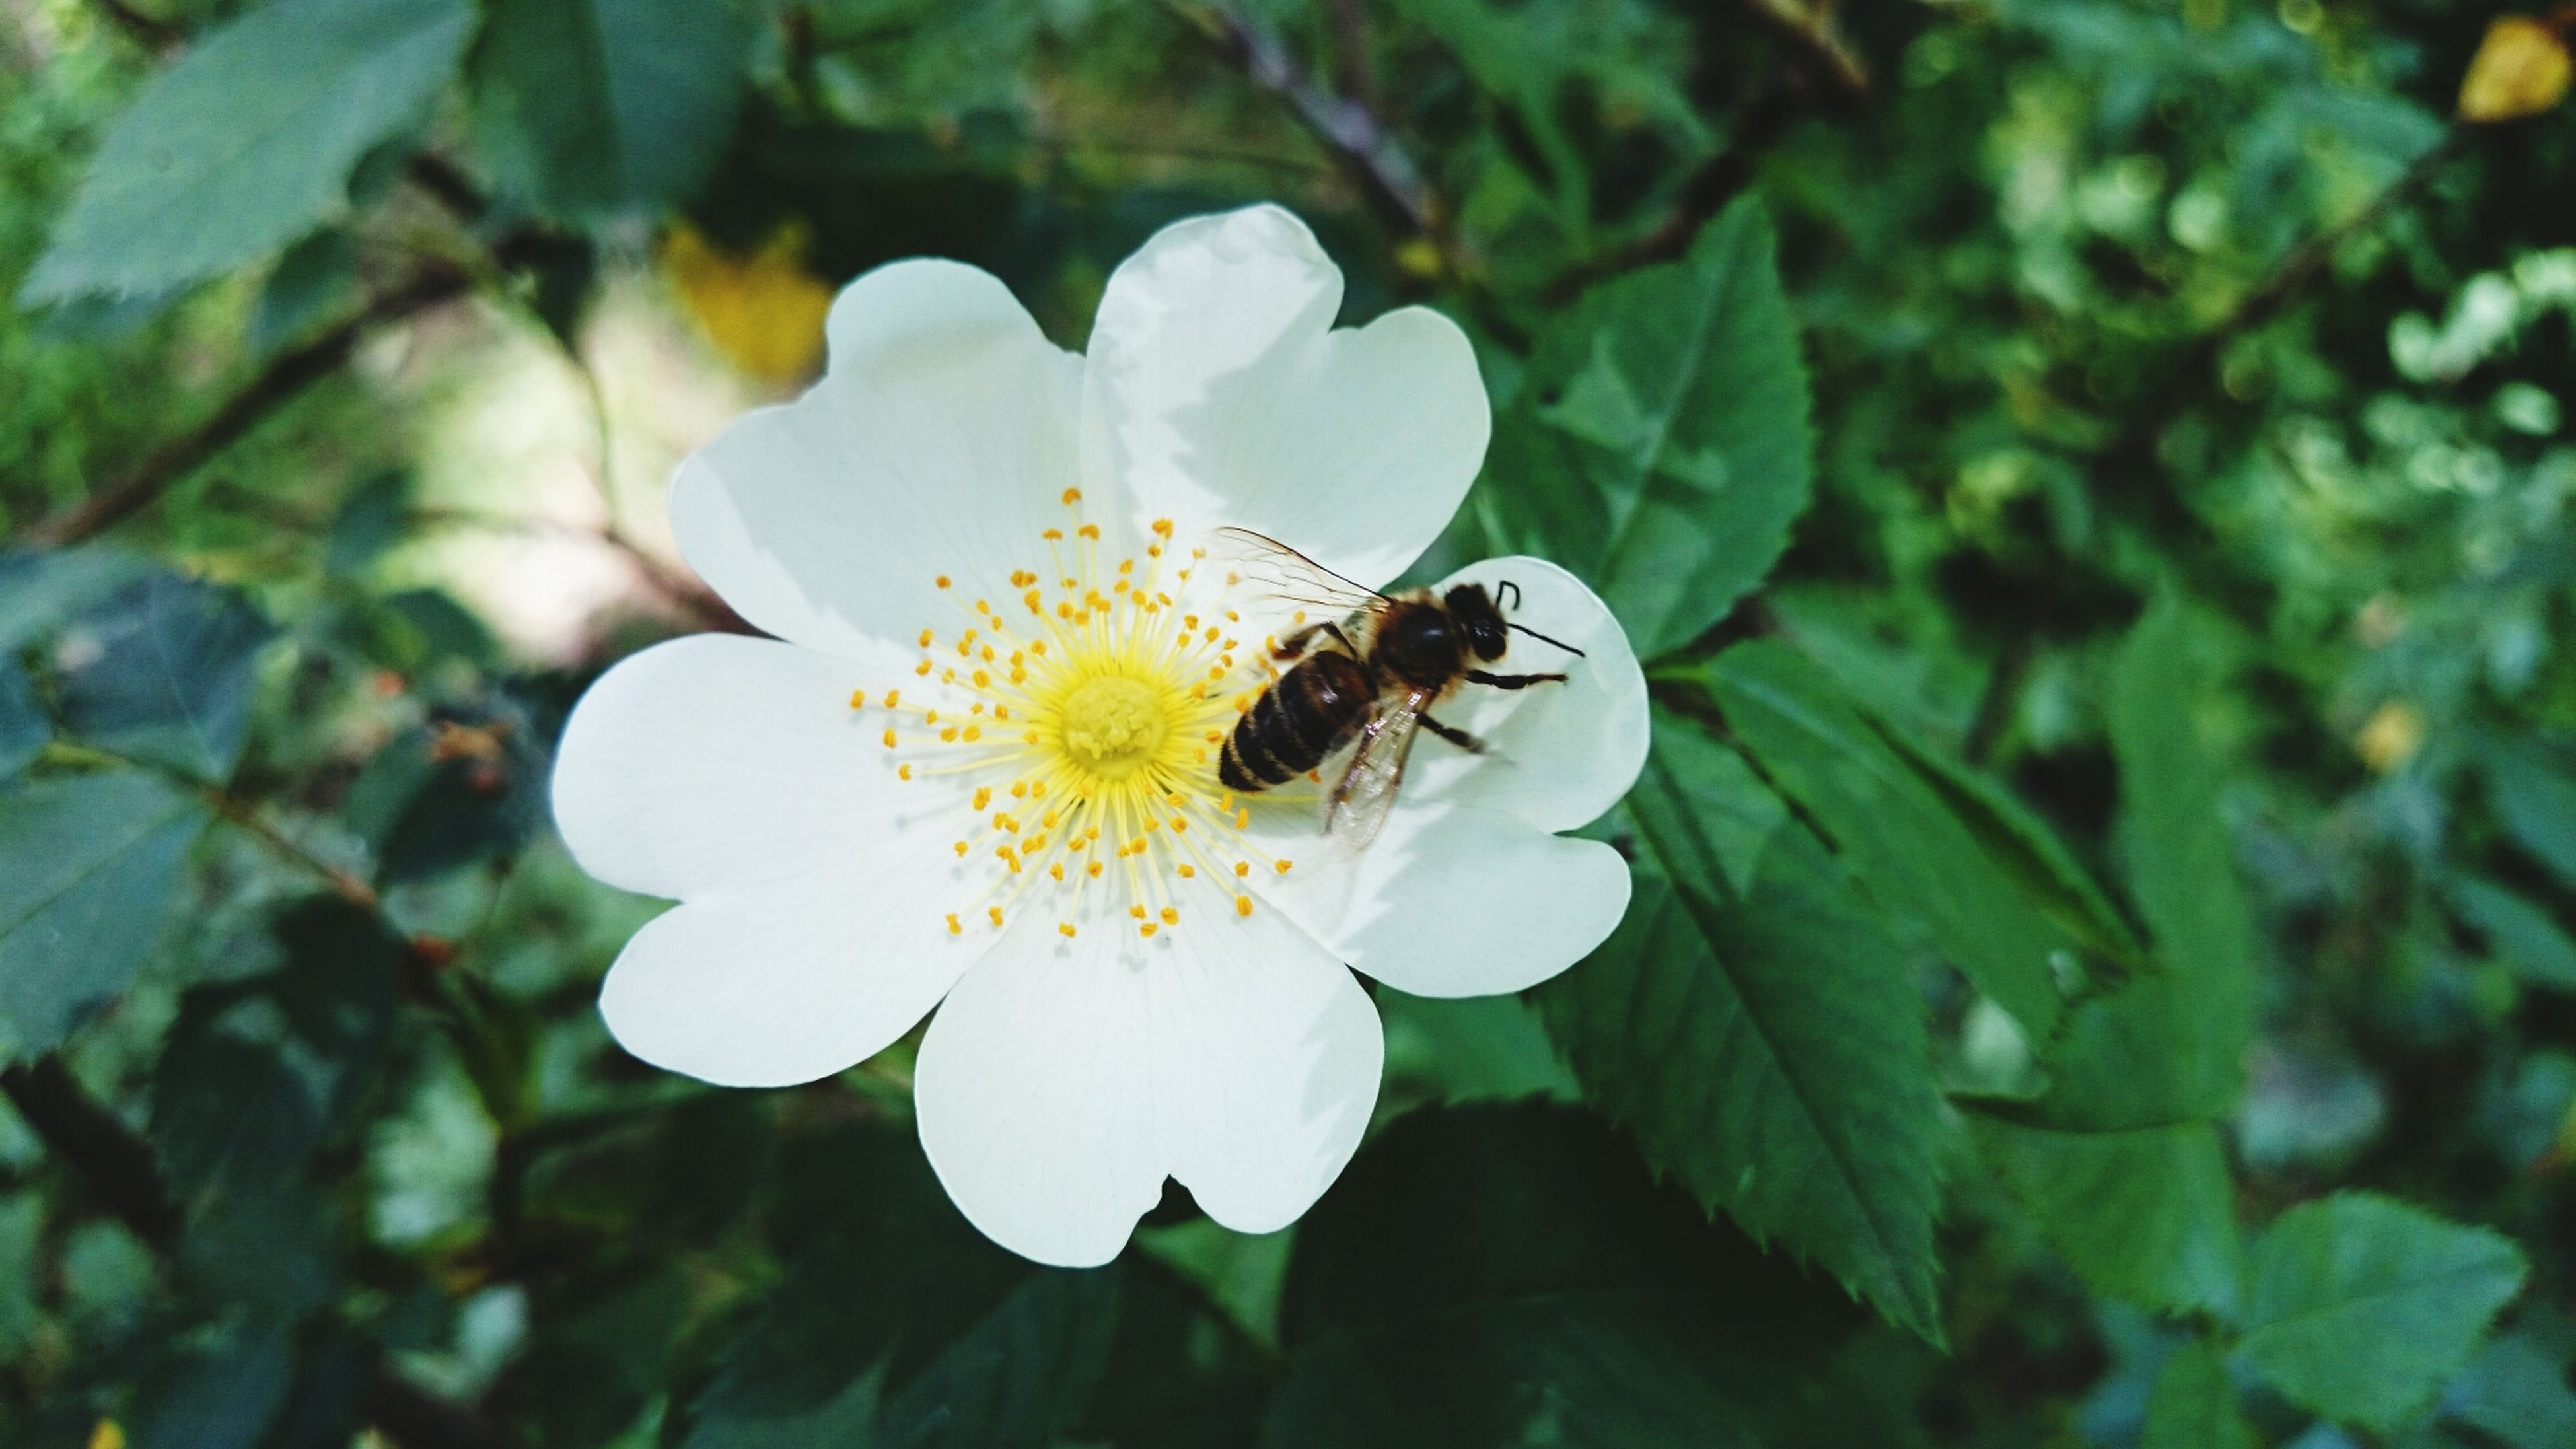 flower, insect, petal, animal themes, one animal, white color, fragility, freshness, animals in the wild, wildlife, growth, flower head, close-up, beauty in nature, focus on foreground, nature, pollen, plant, blooming, single flower